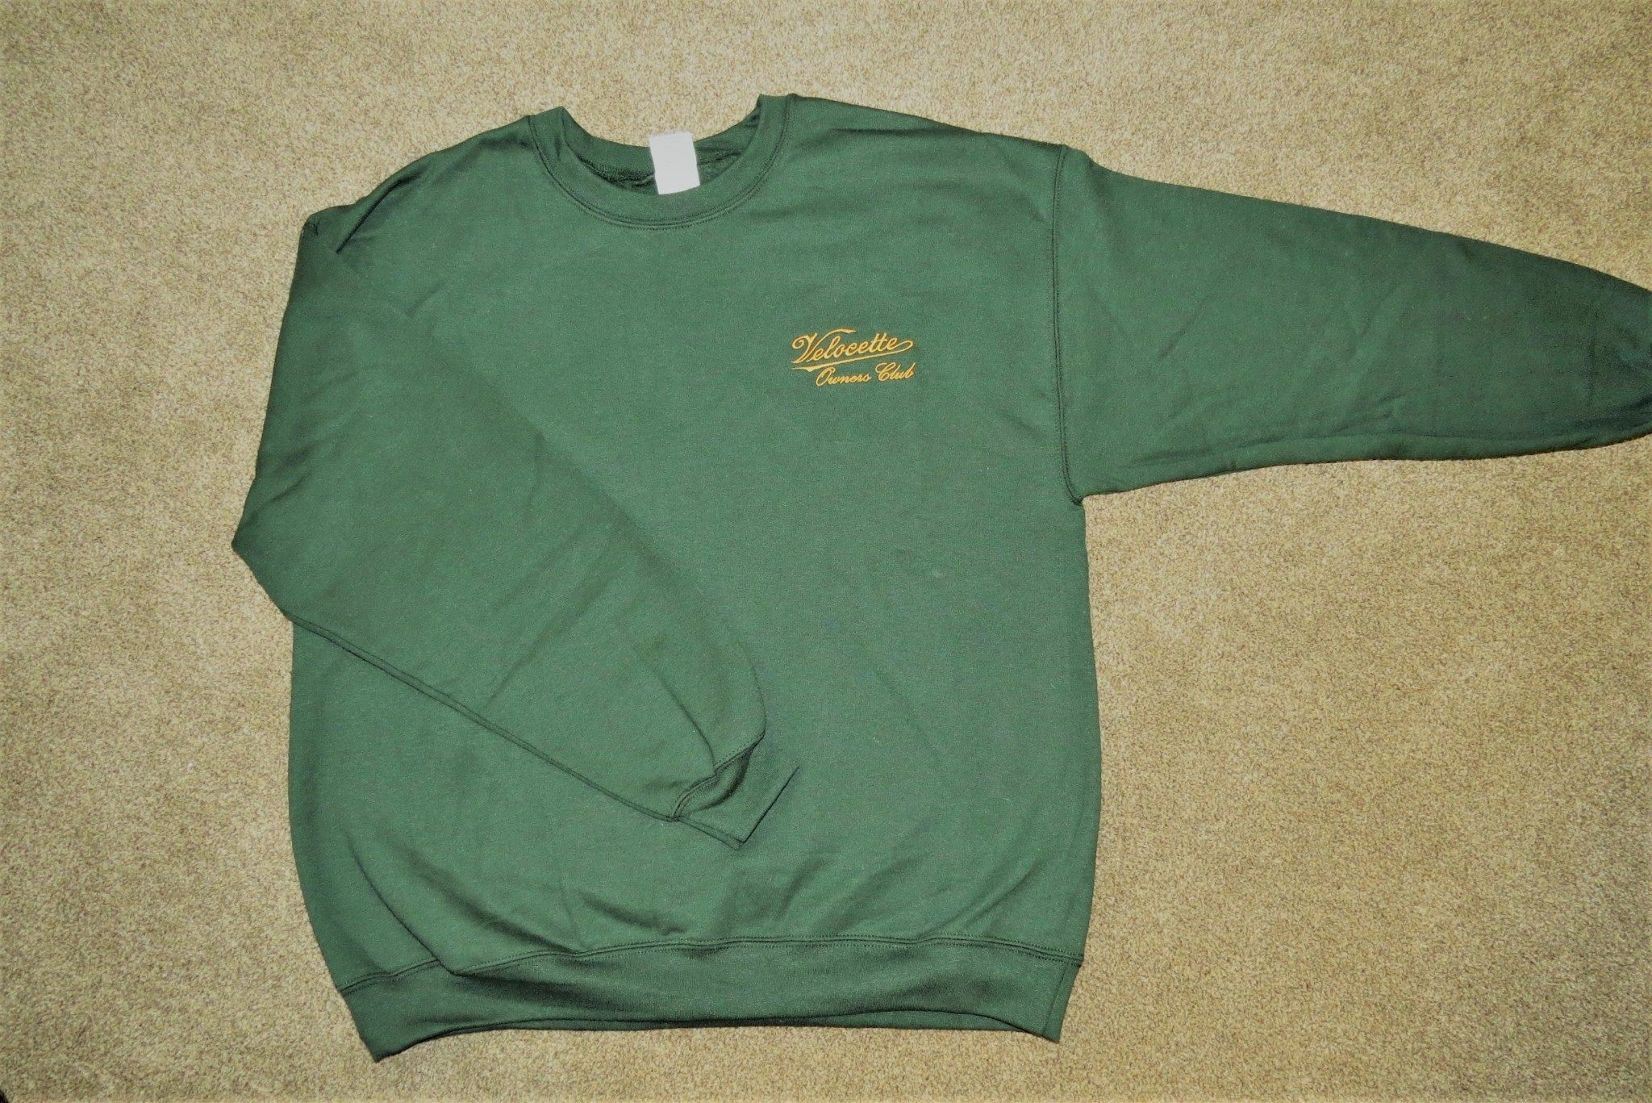 The Velocette Owners Sweatshirt